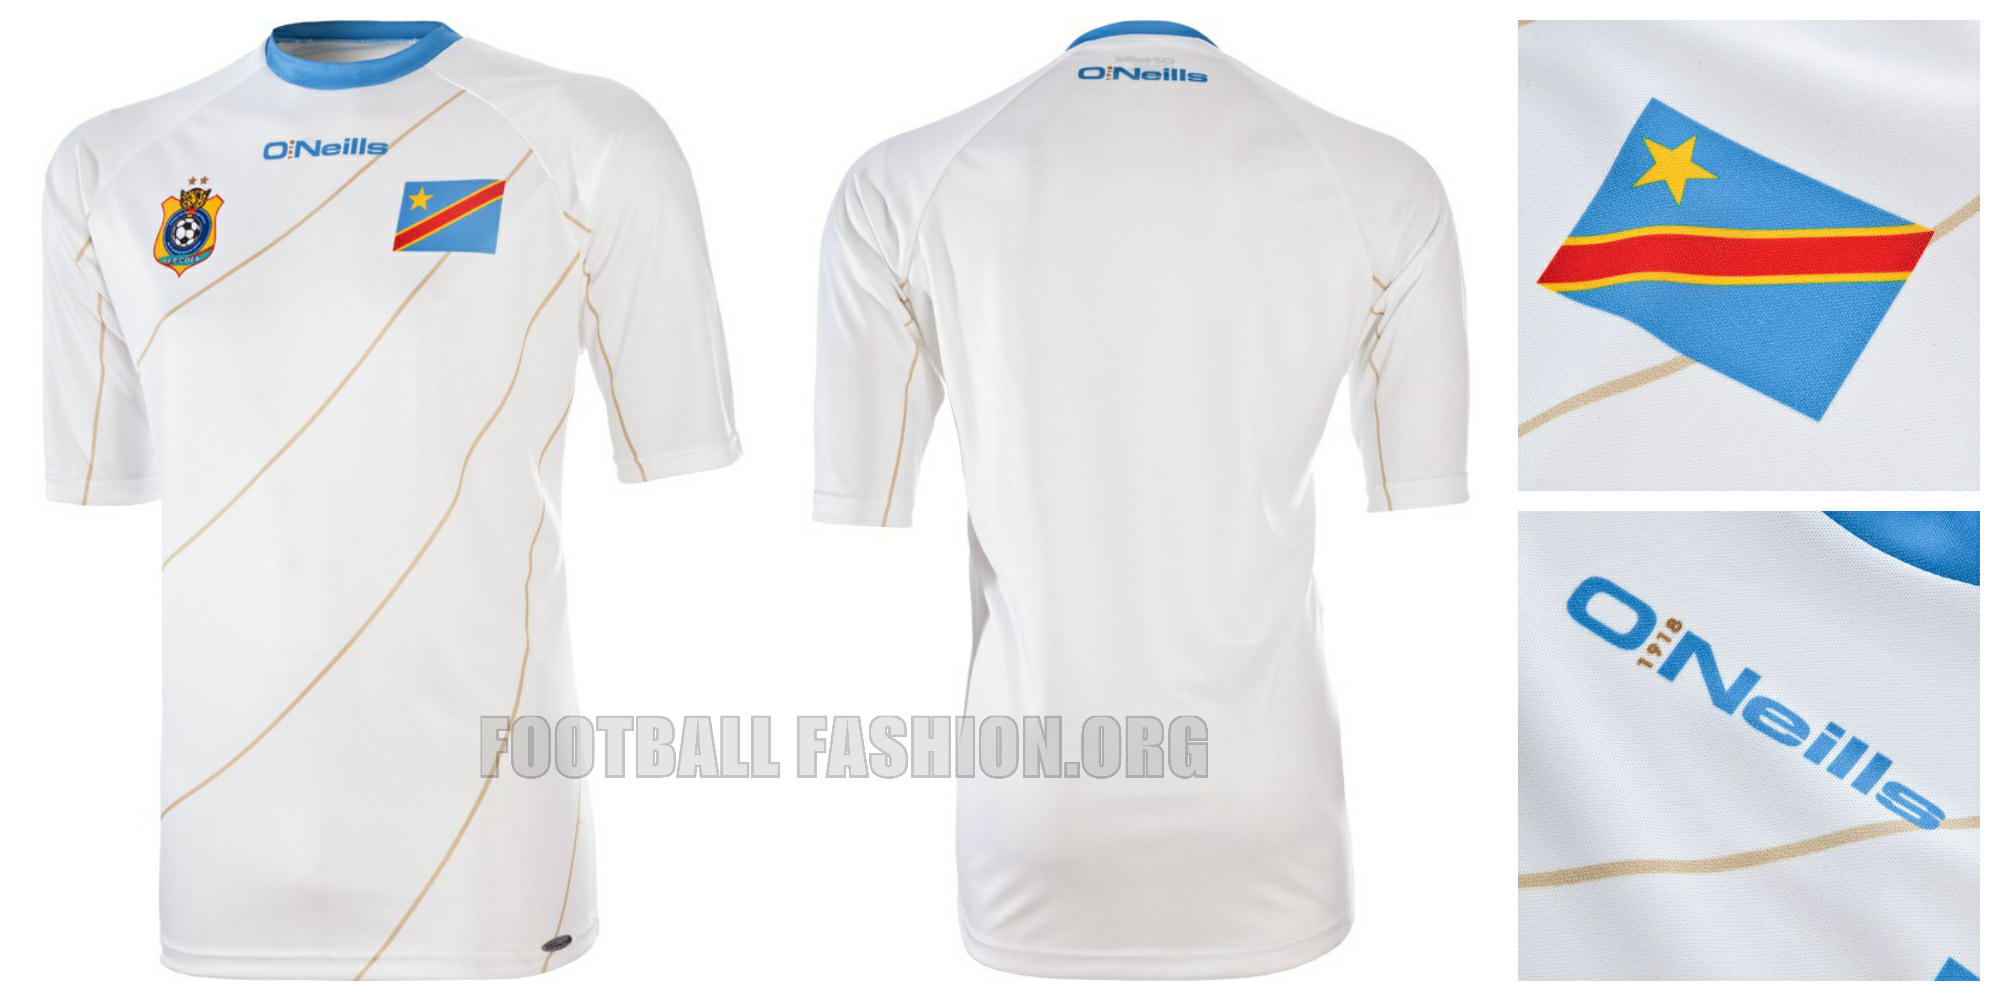 DR Congo 2015 Africa Cup of Nations O Neills Home and Away Jerseys –  FOOTBALL FASHION.ORG c1ade6429